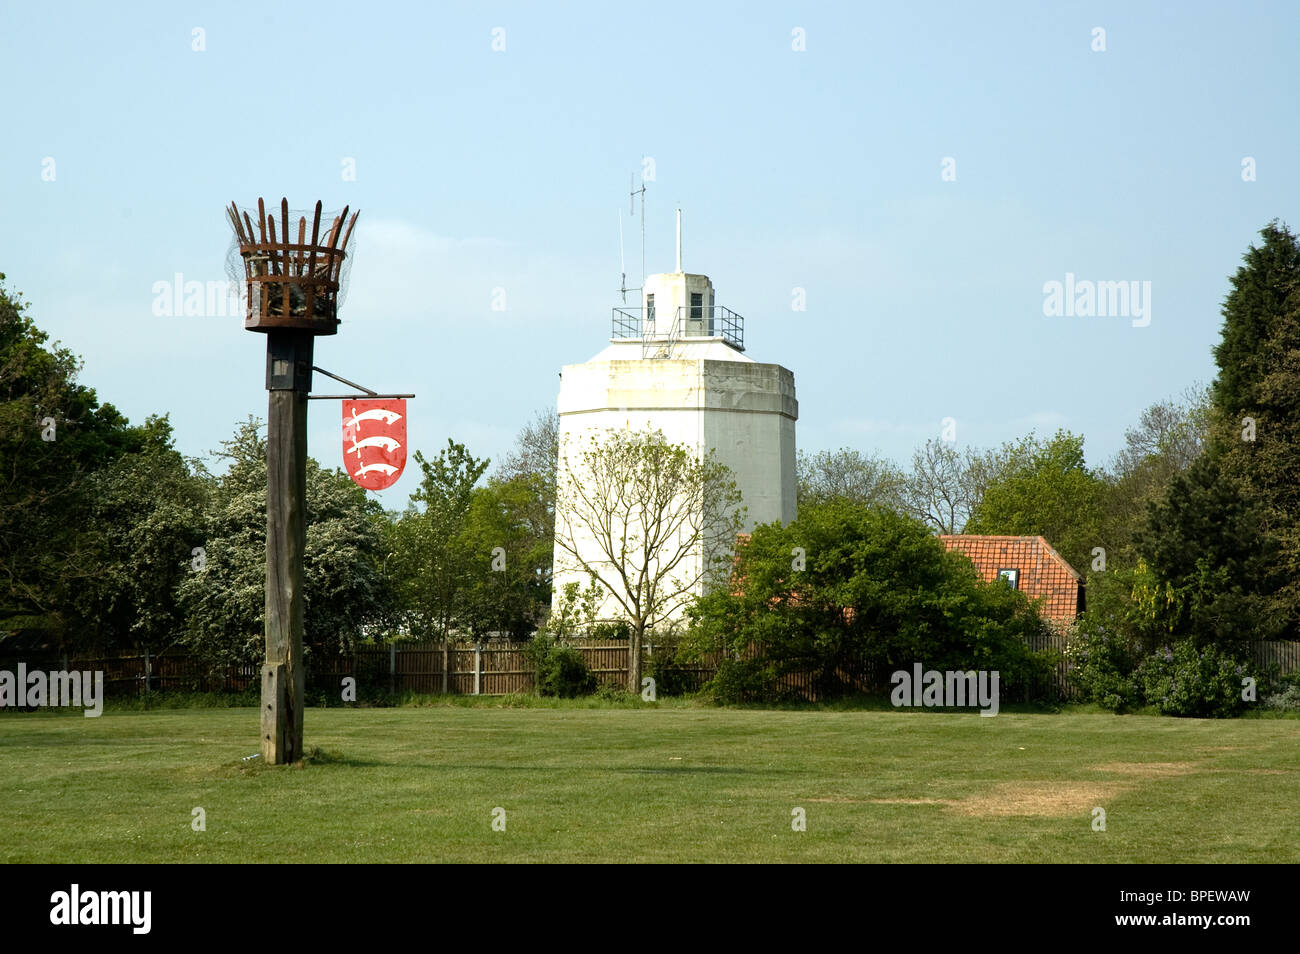 The Beacon at Langdon Hills Country Park near Basildon, Essex - Stock Image